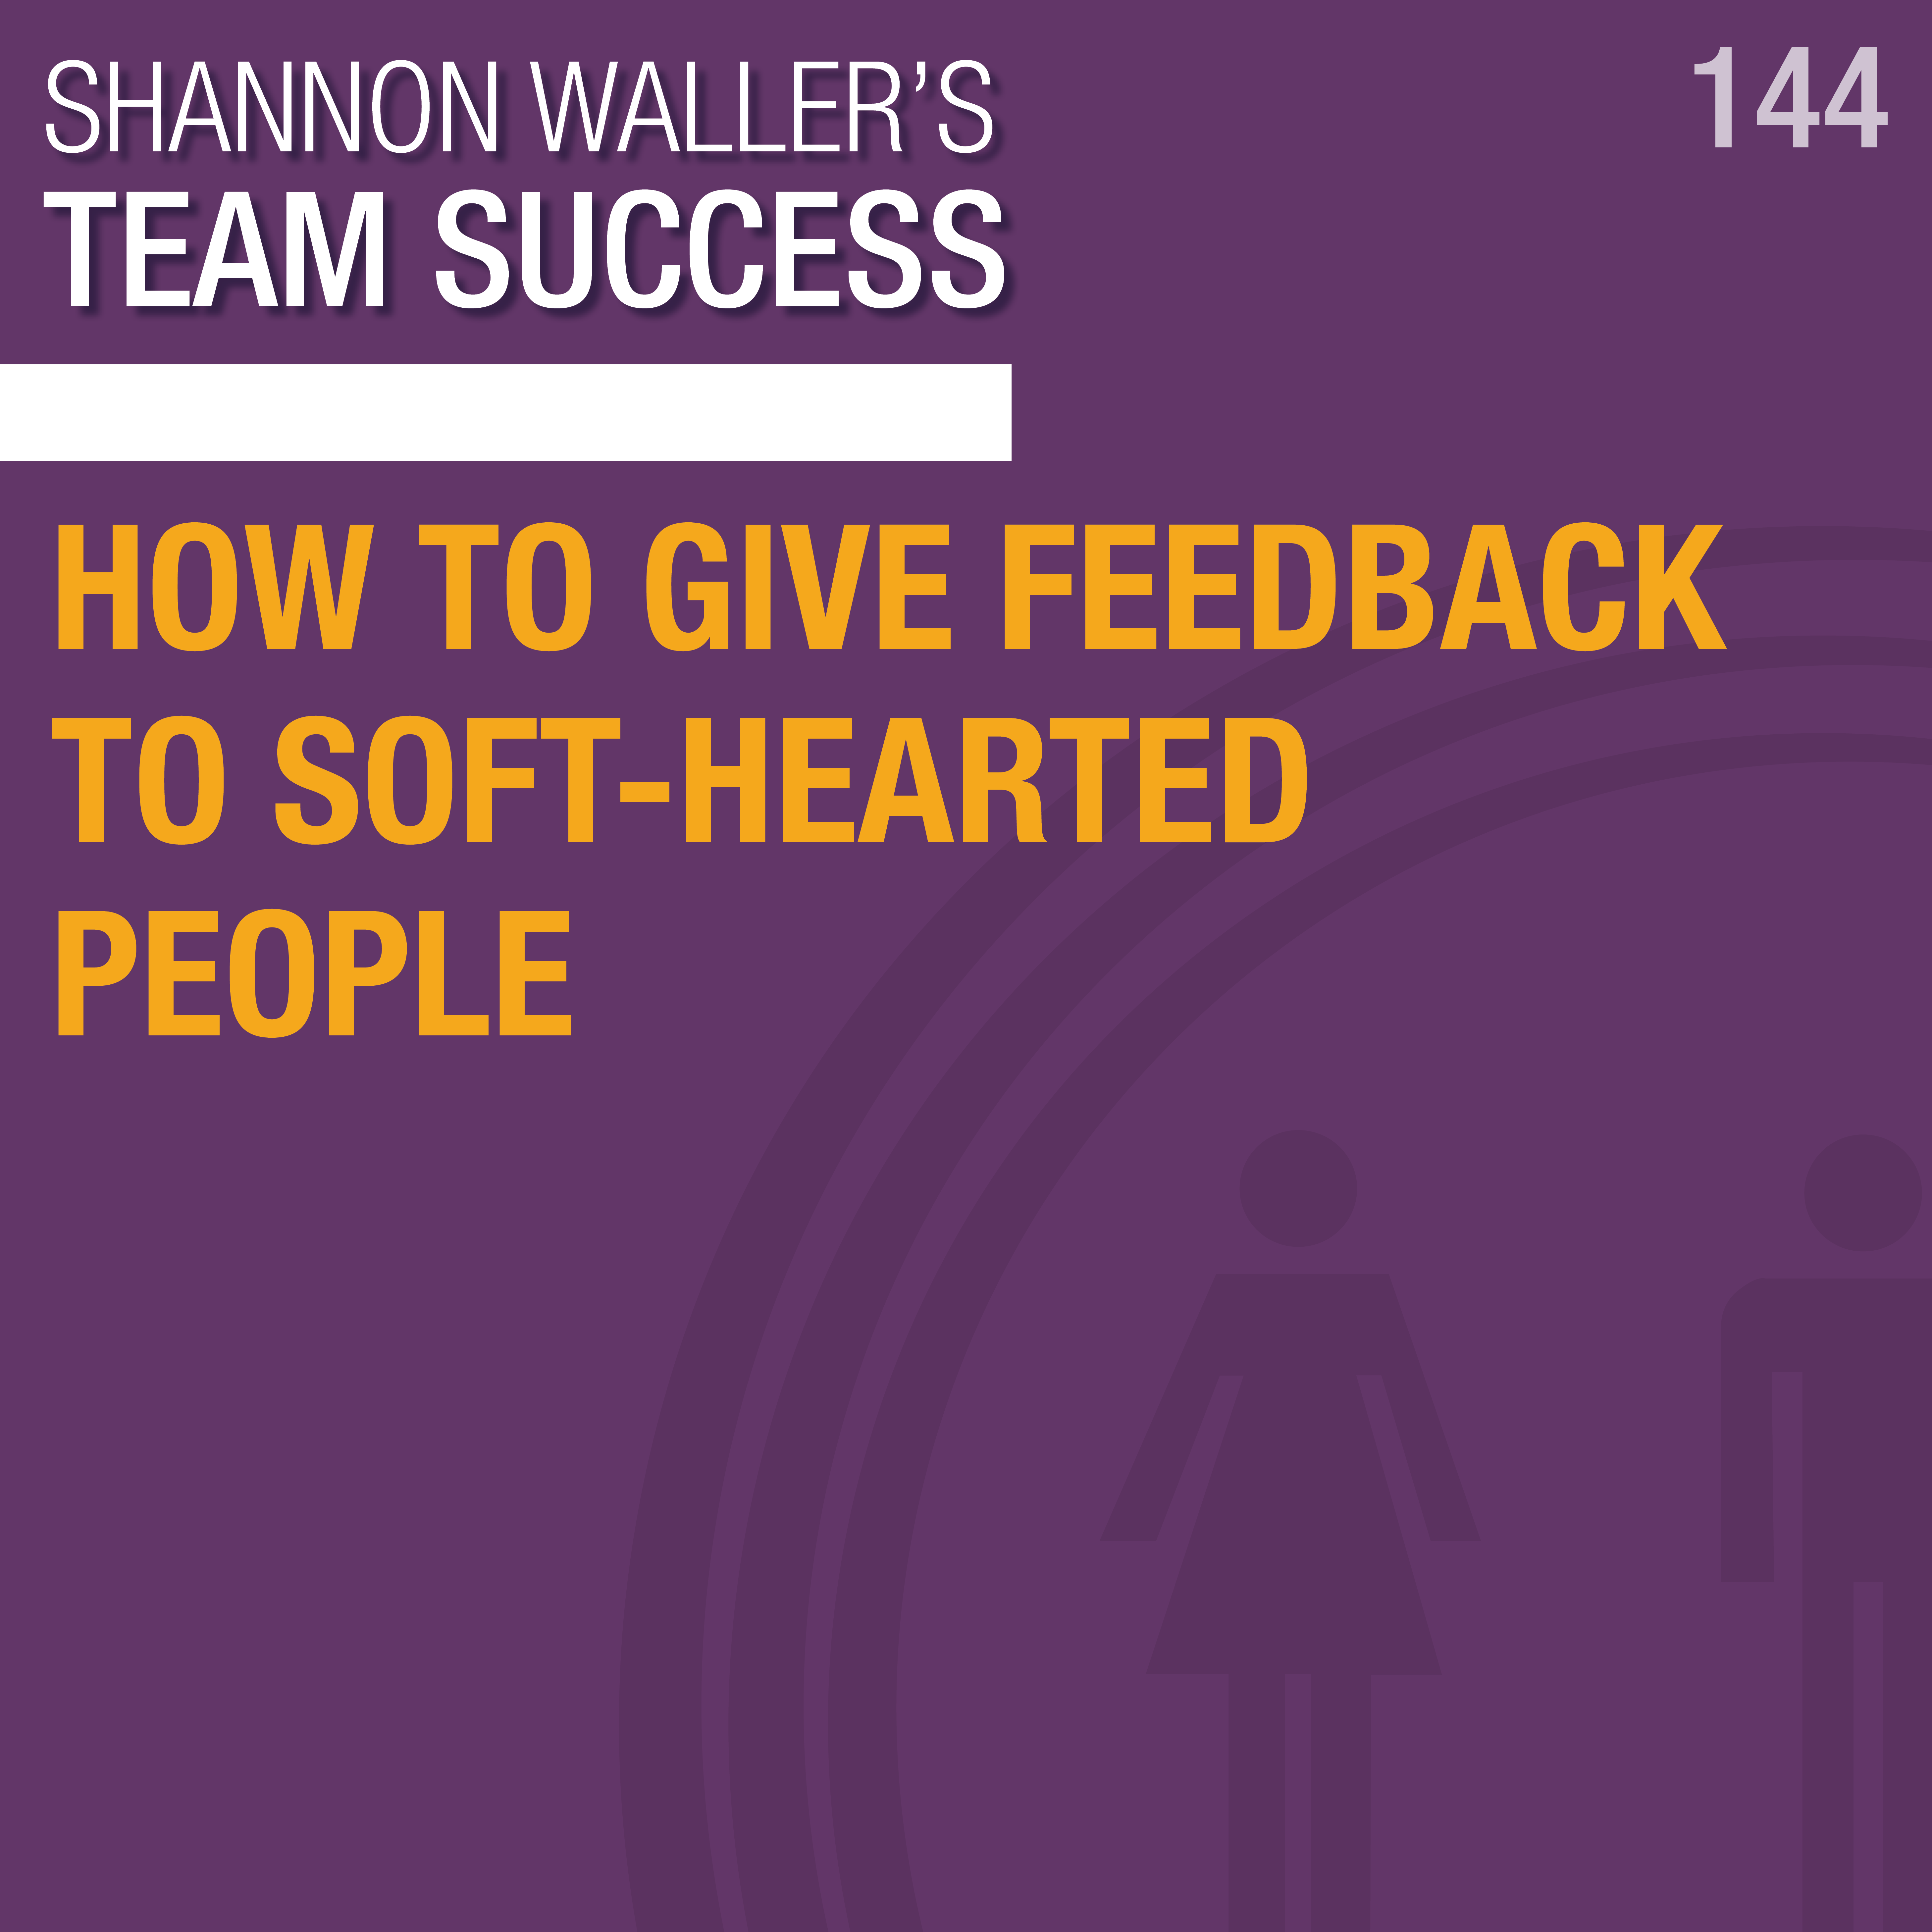 How To Give Feedback To Soft-Hearted People